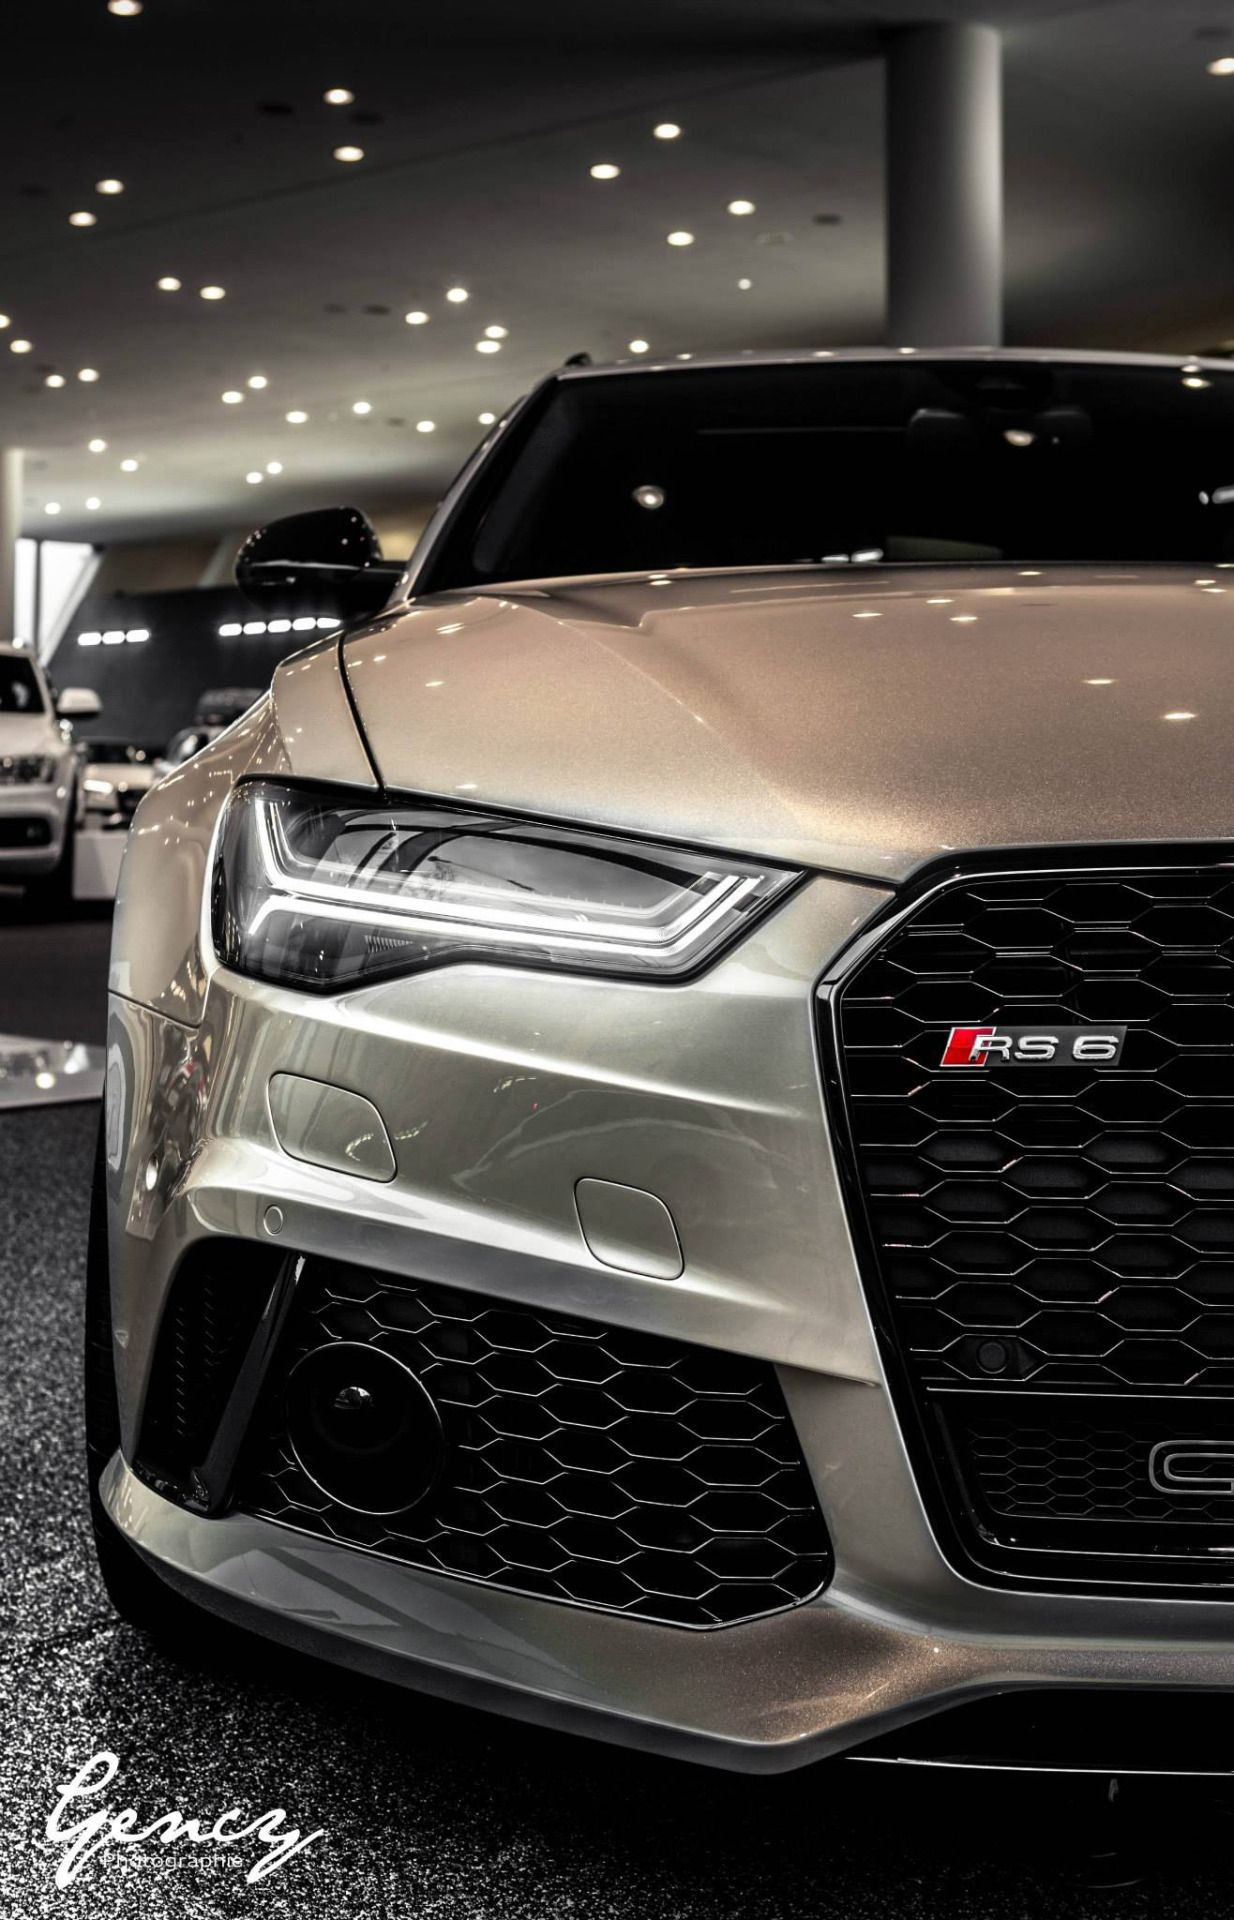 rhubarbes RS6 by Gency graphieMore cars here CLICK the